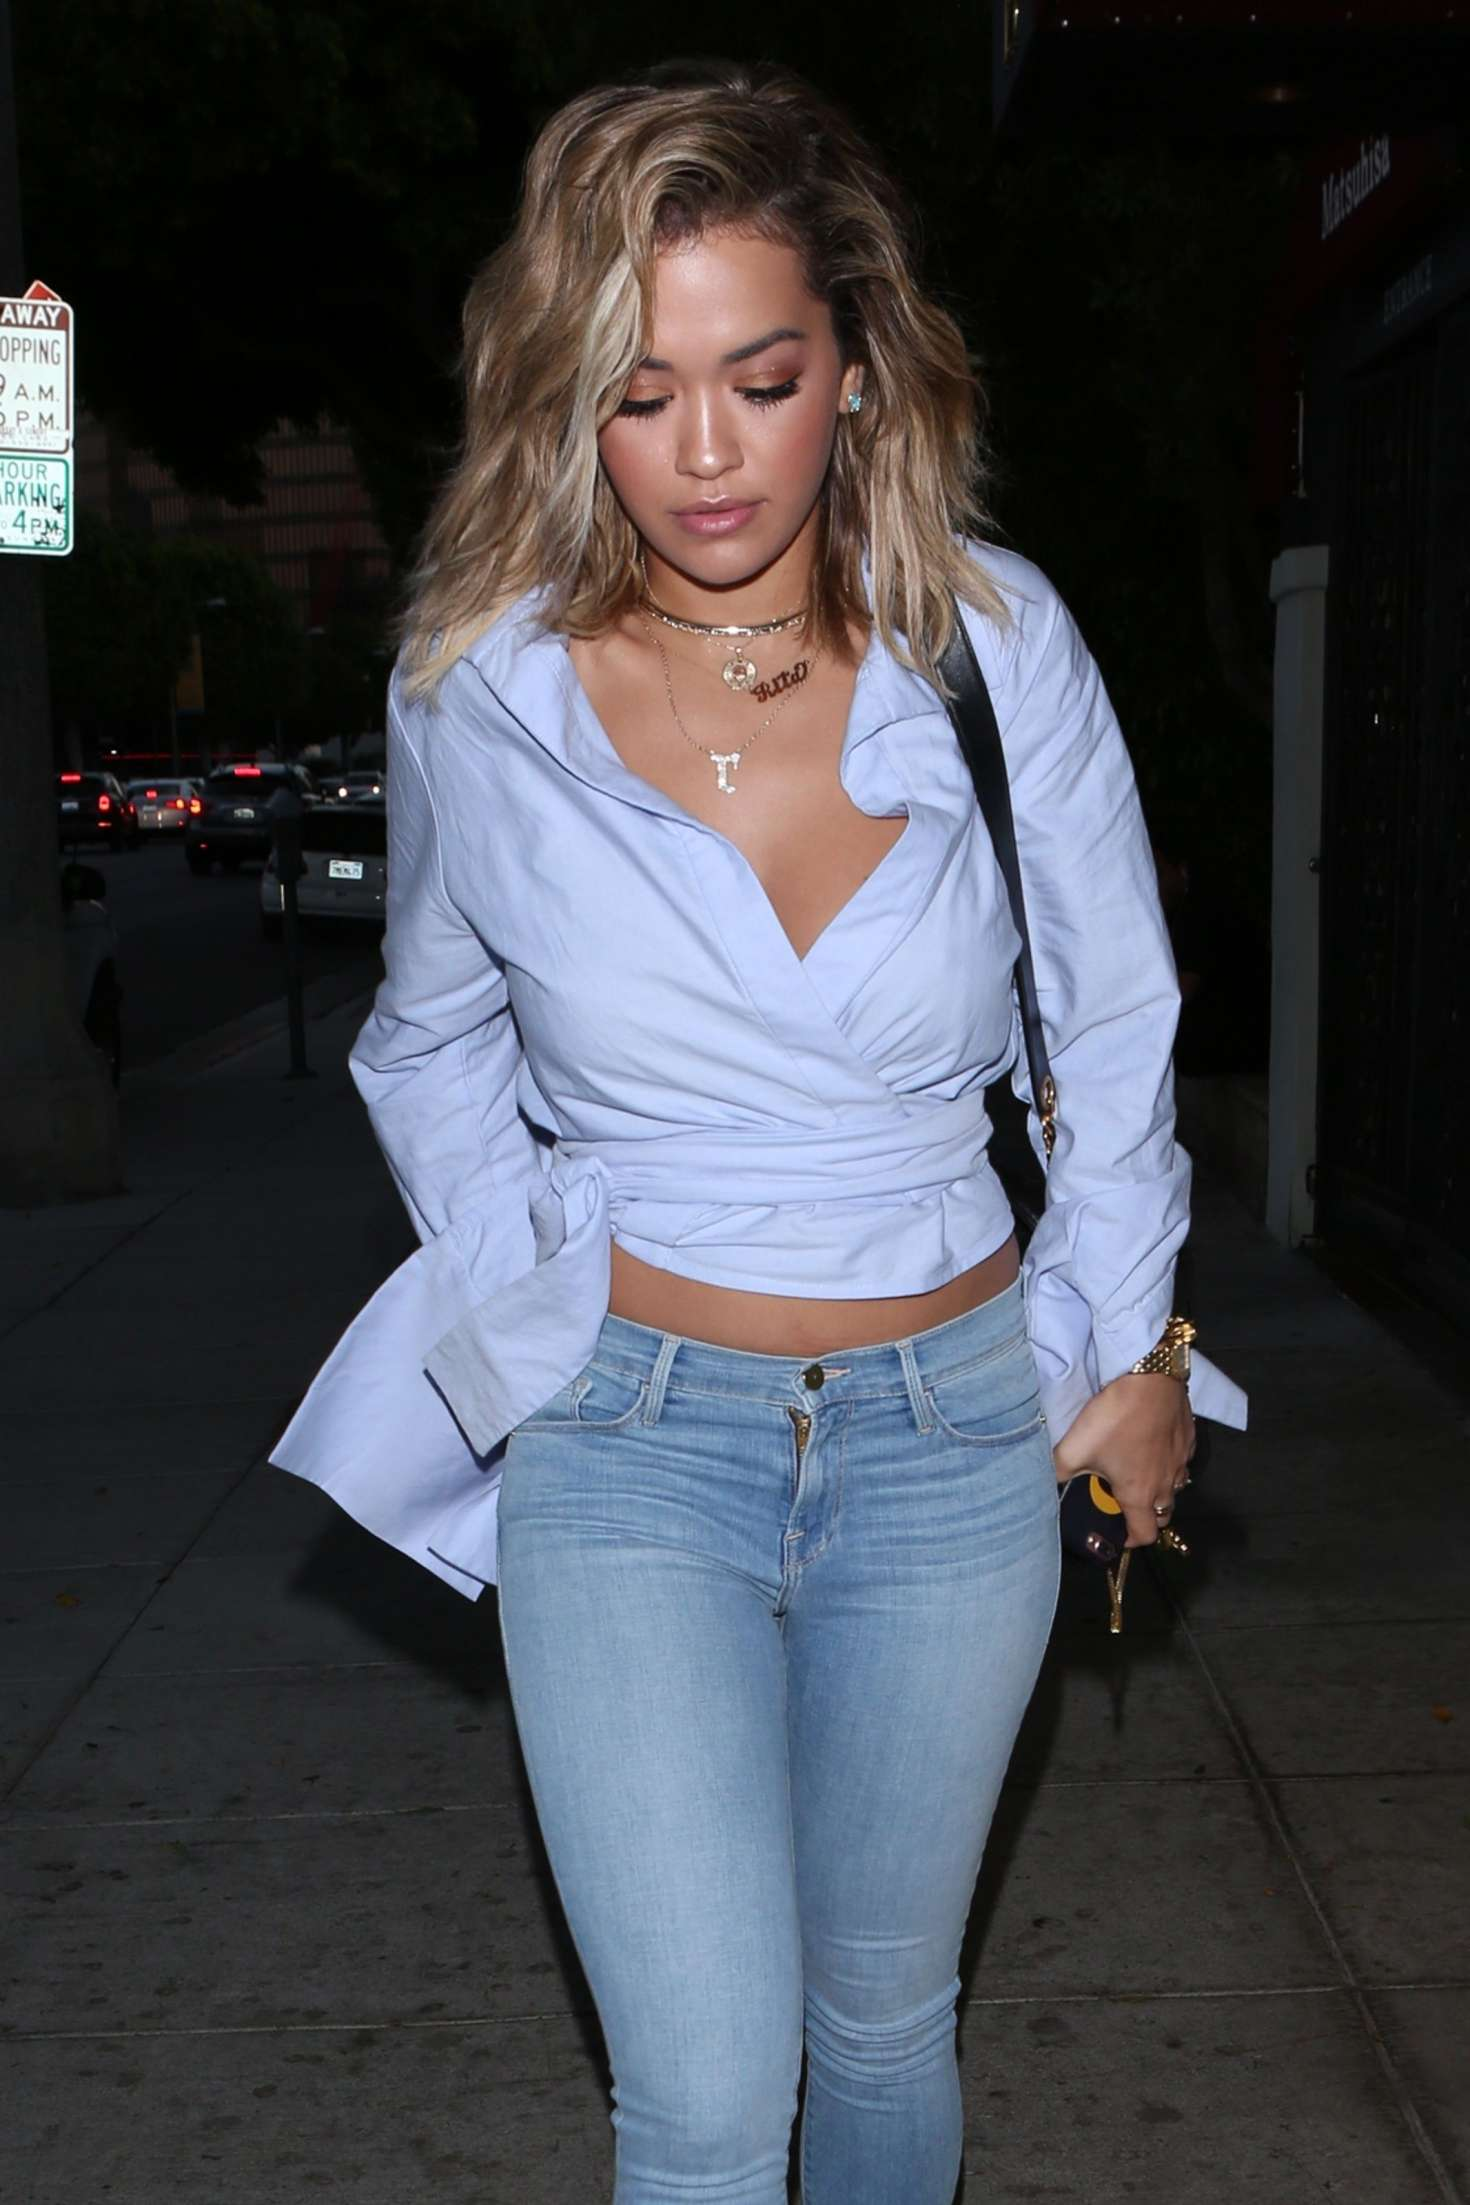 Lakers Vs Cavaliers 2019 >> Rita Ora in Skinny Jeans at Matsuhisa in Beverly Hills